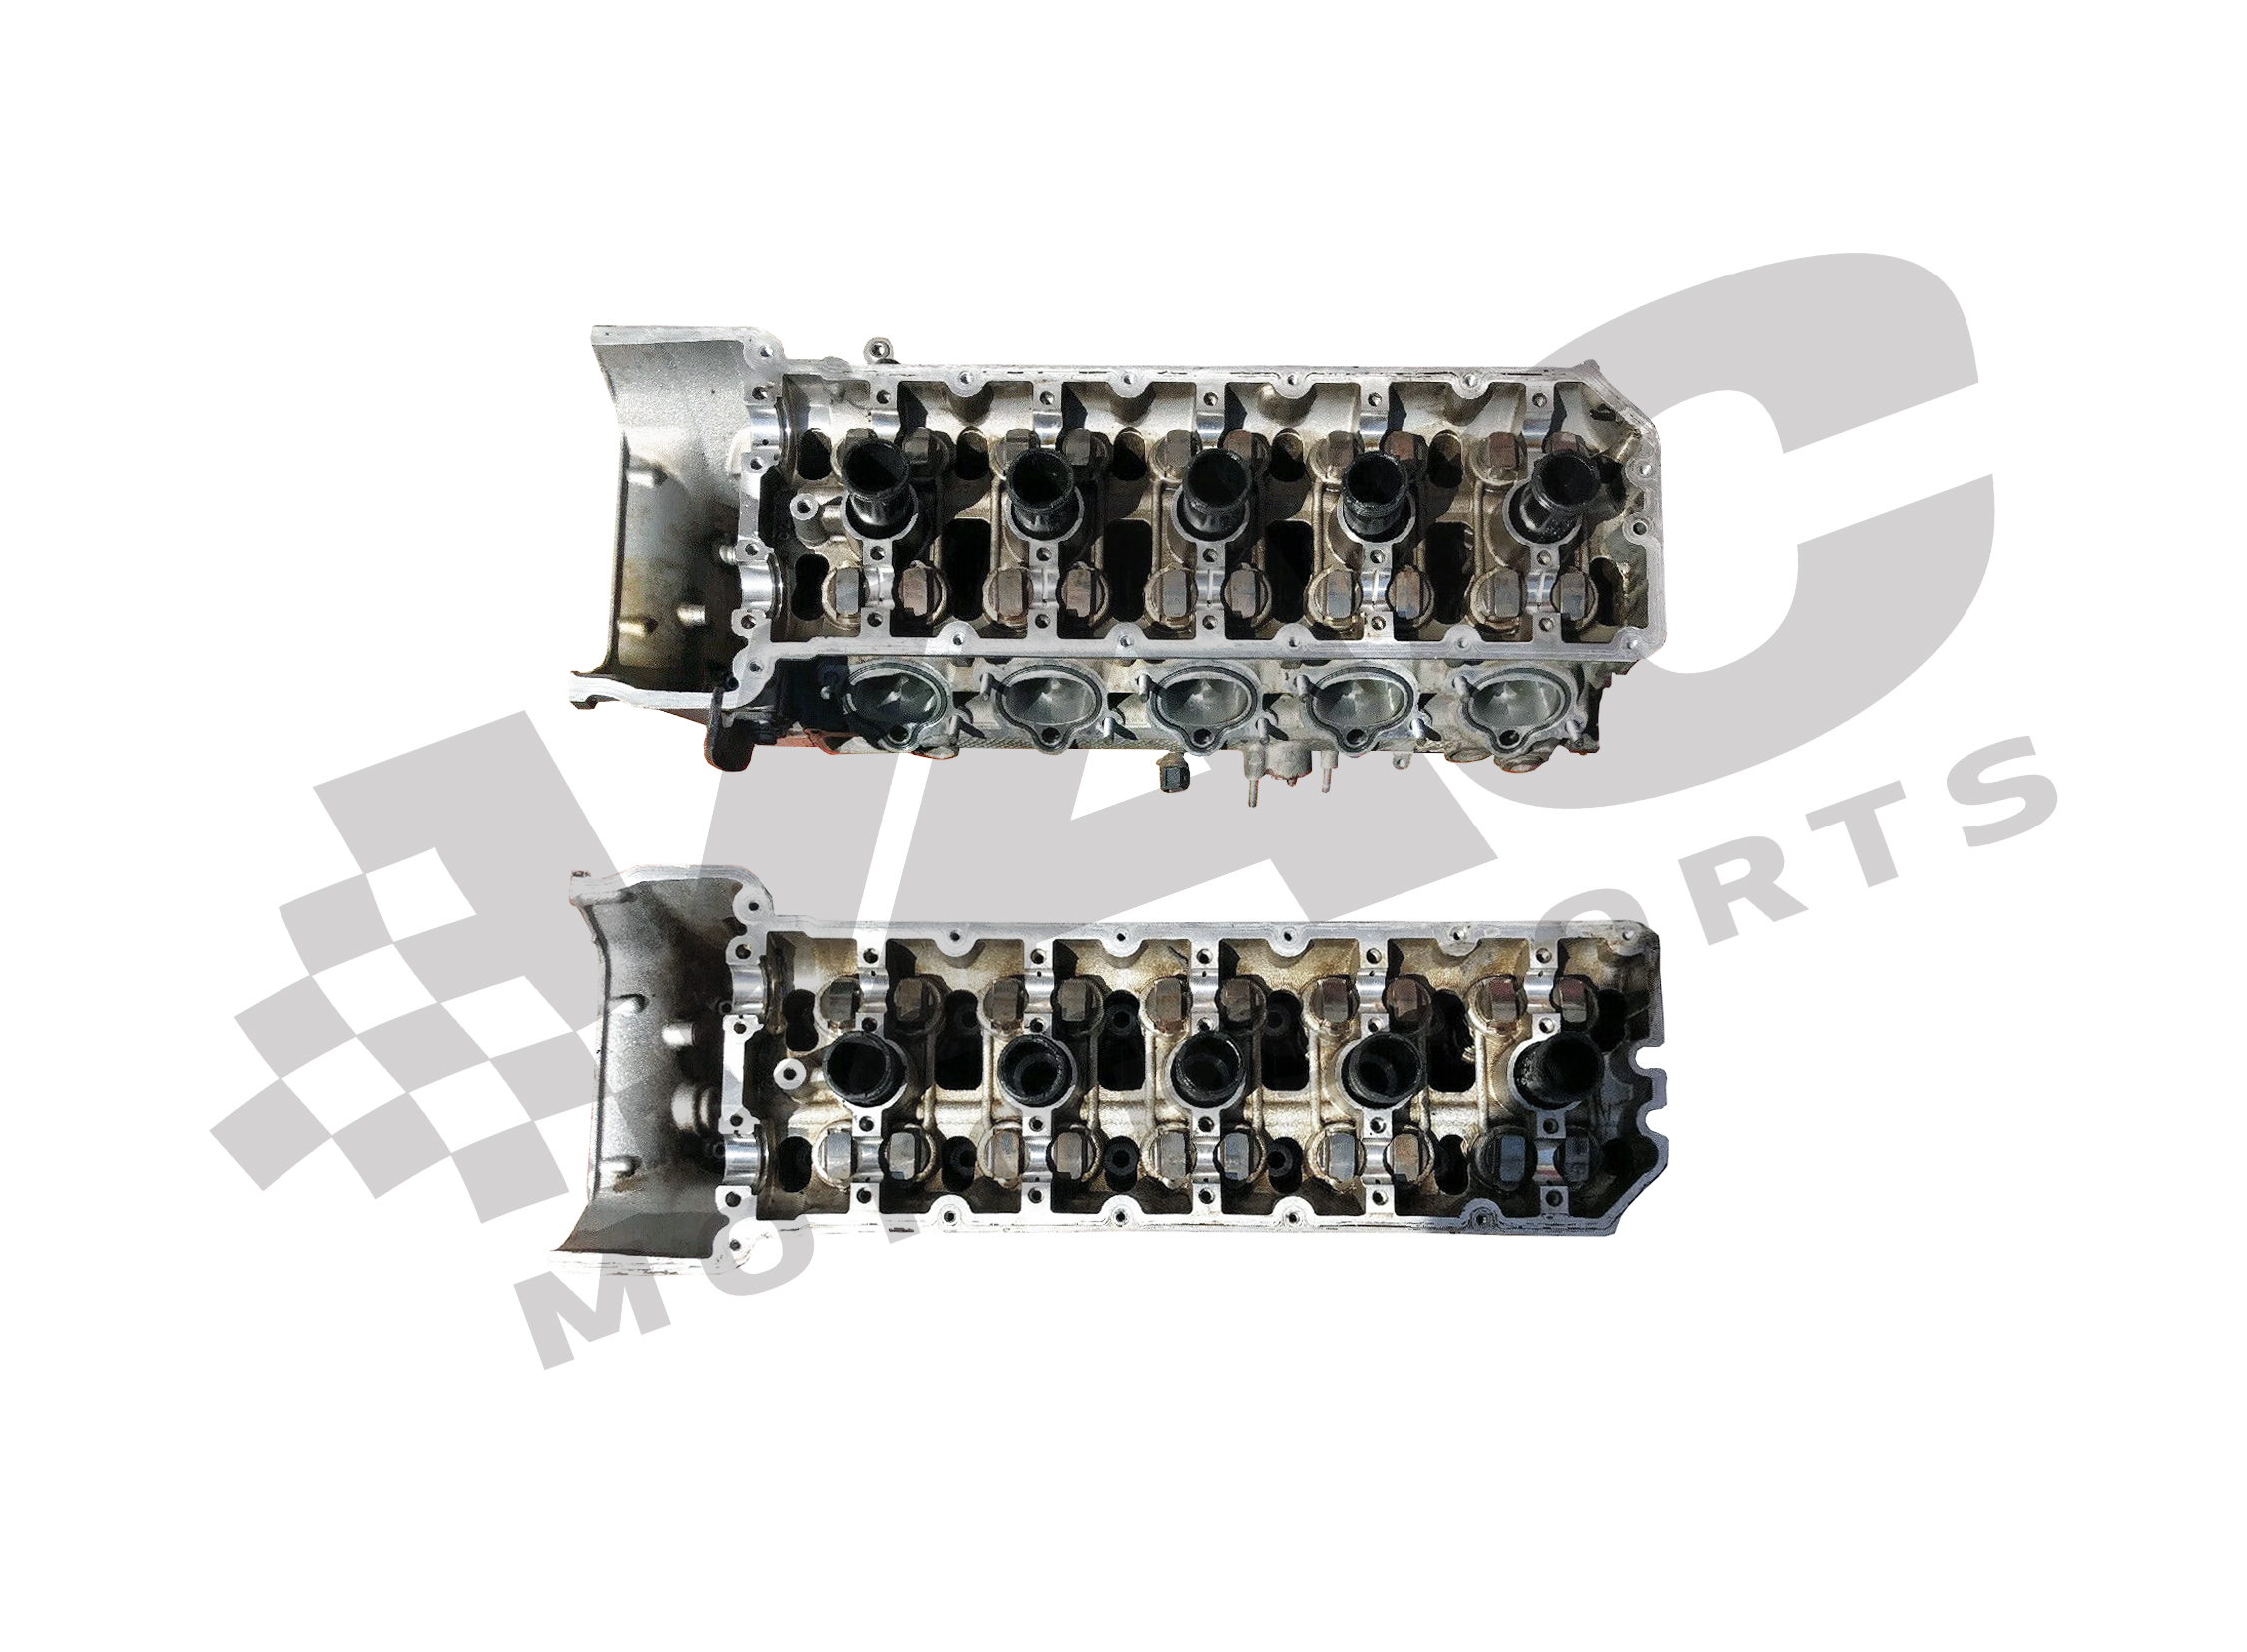 VAC - S85 Performance Cylinder Head Program THUMBNAIL